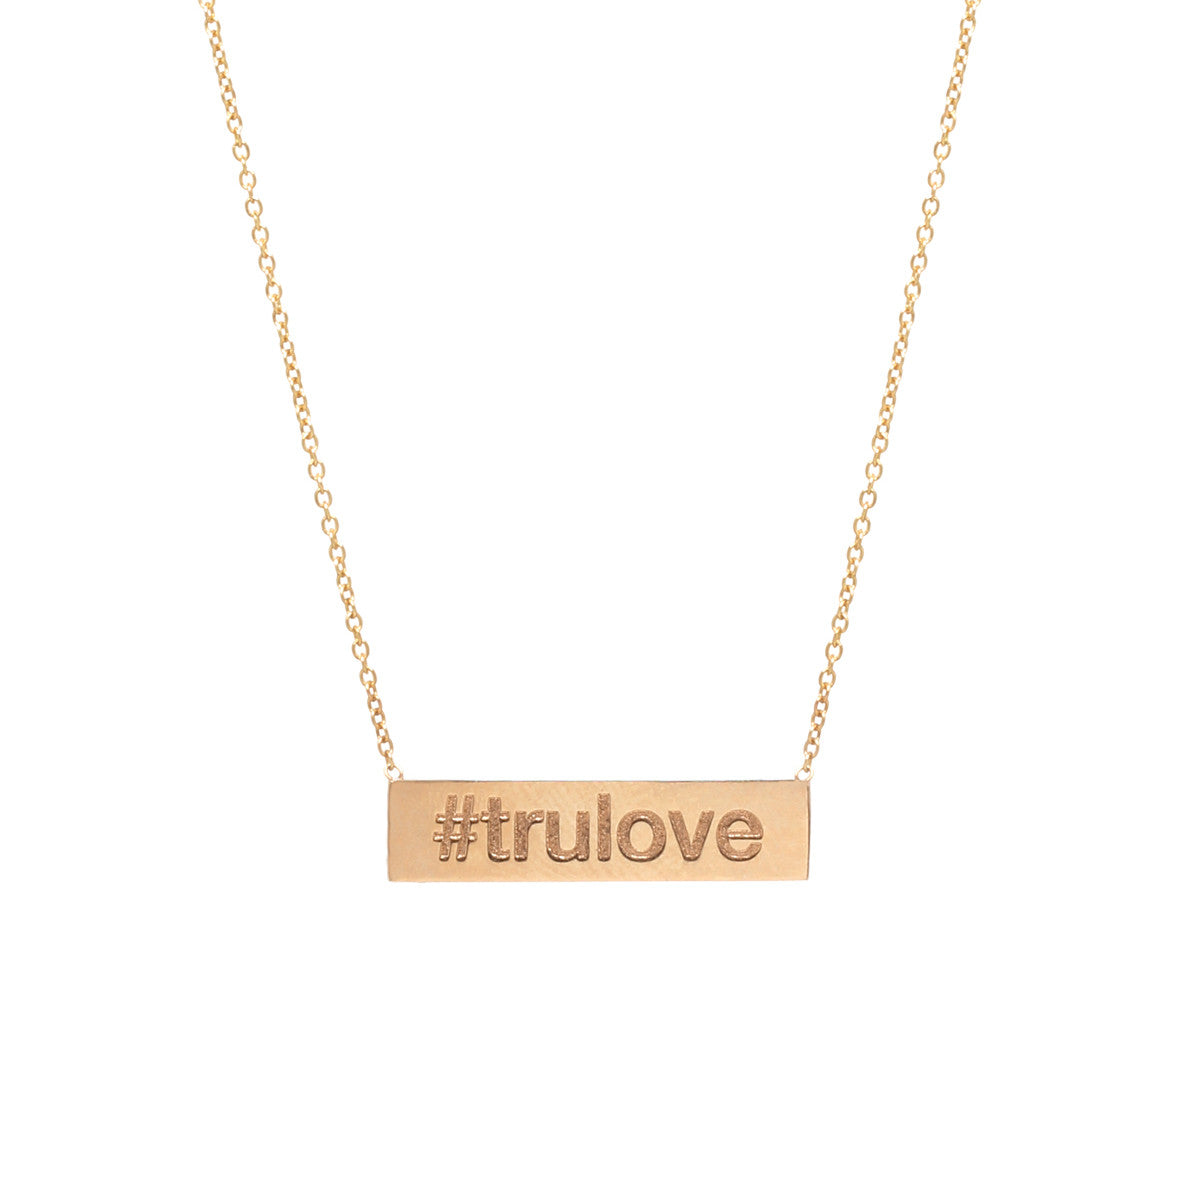 Zoë Chicco 14kt Yellow Gold Hashtag Necklace